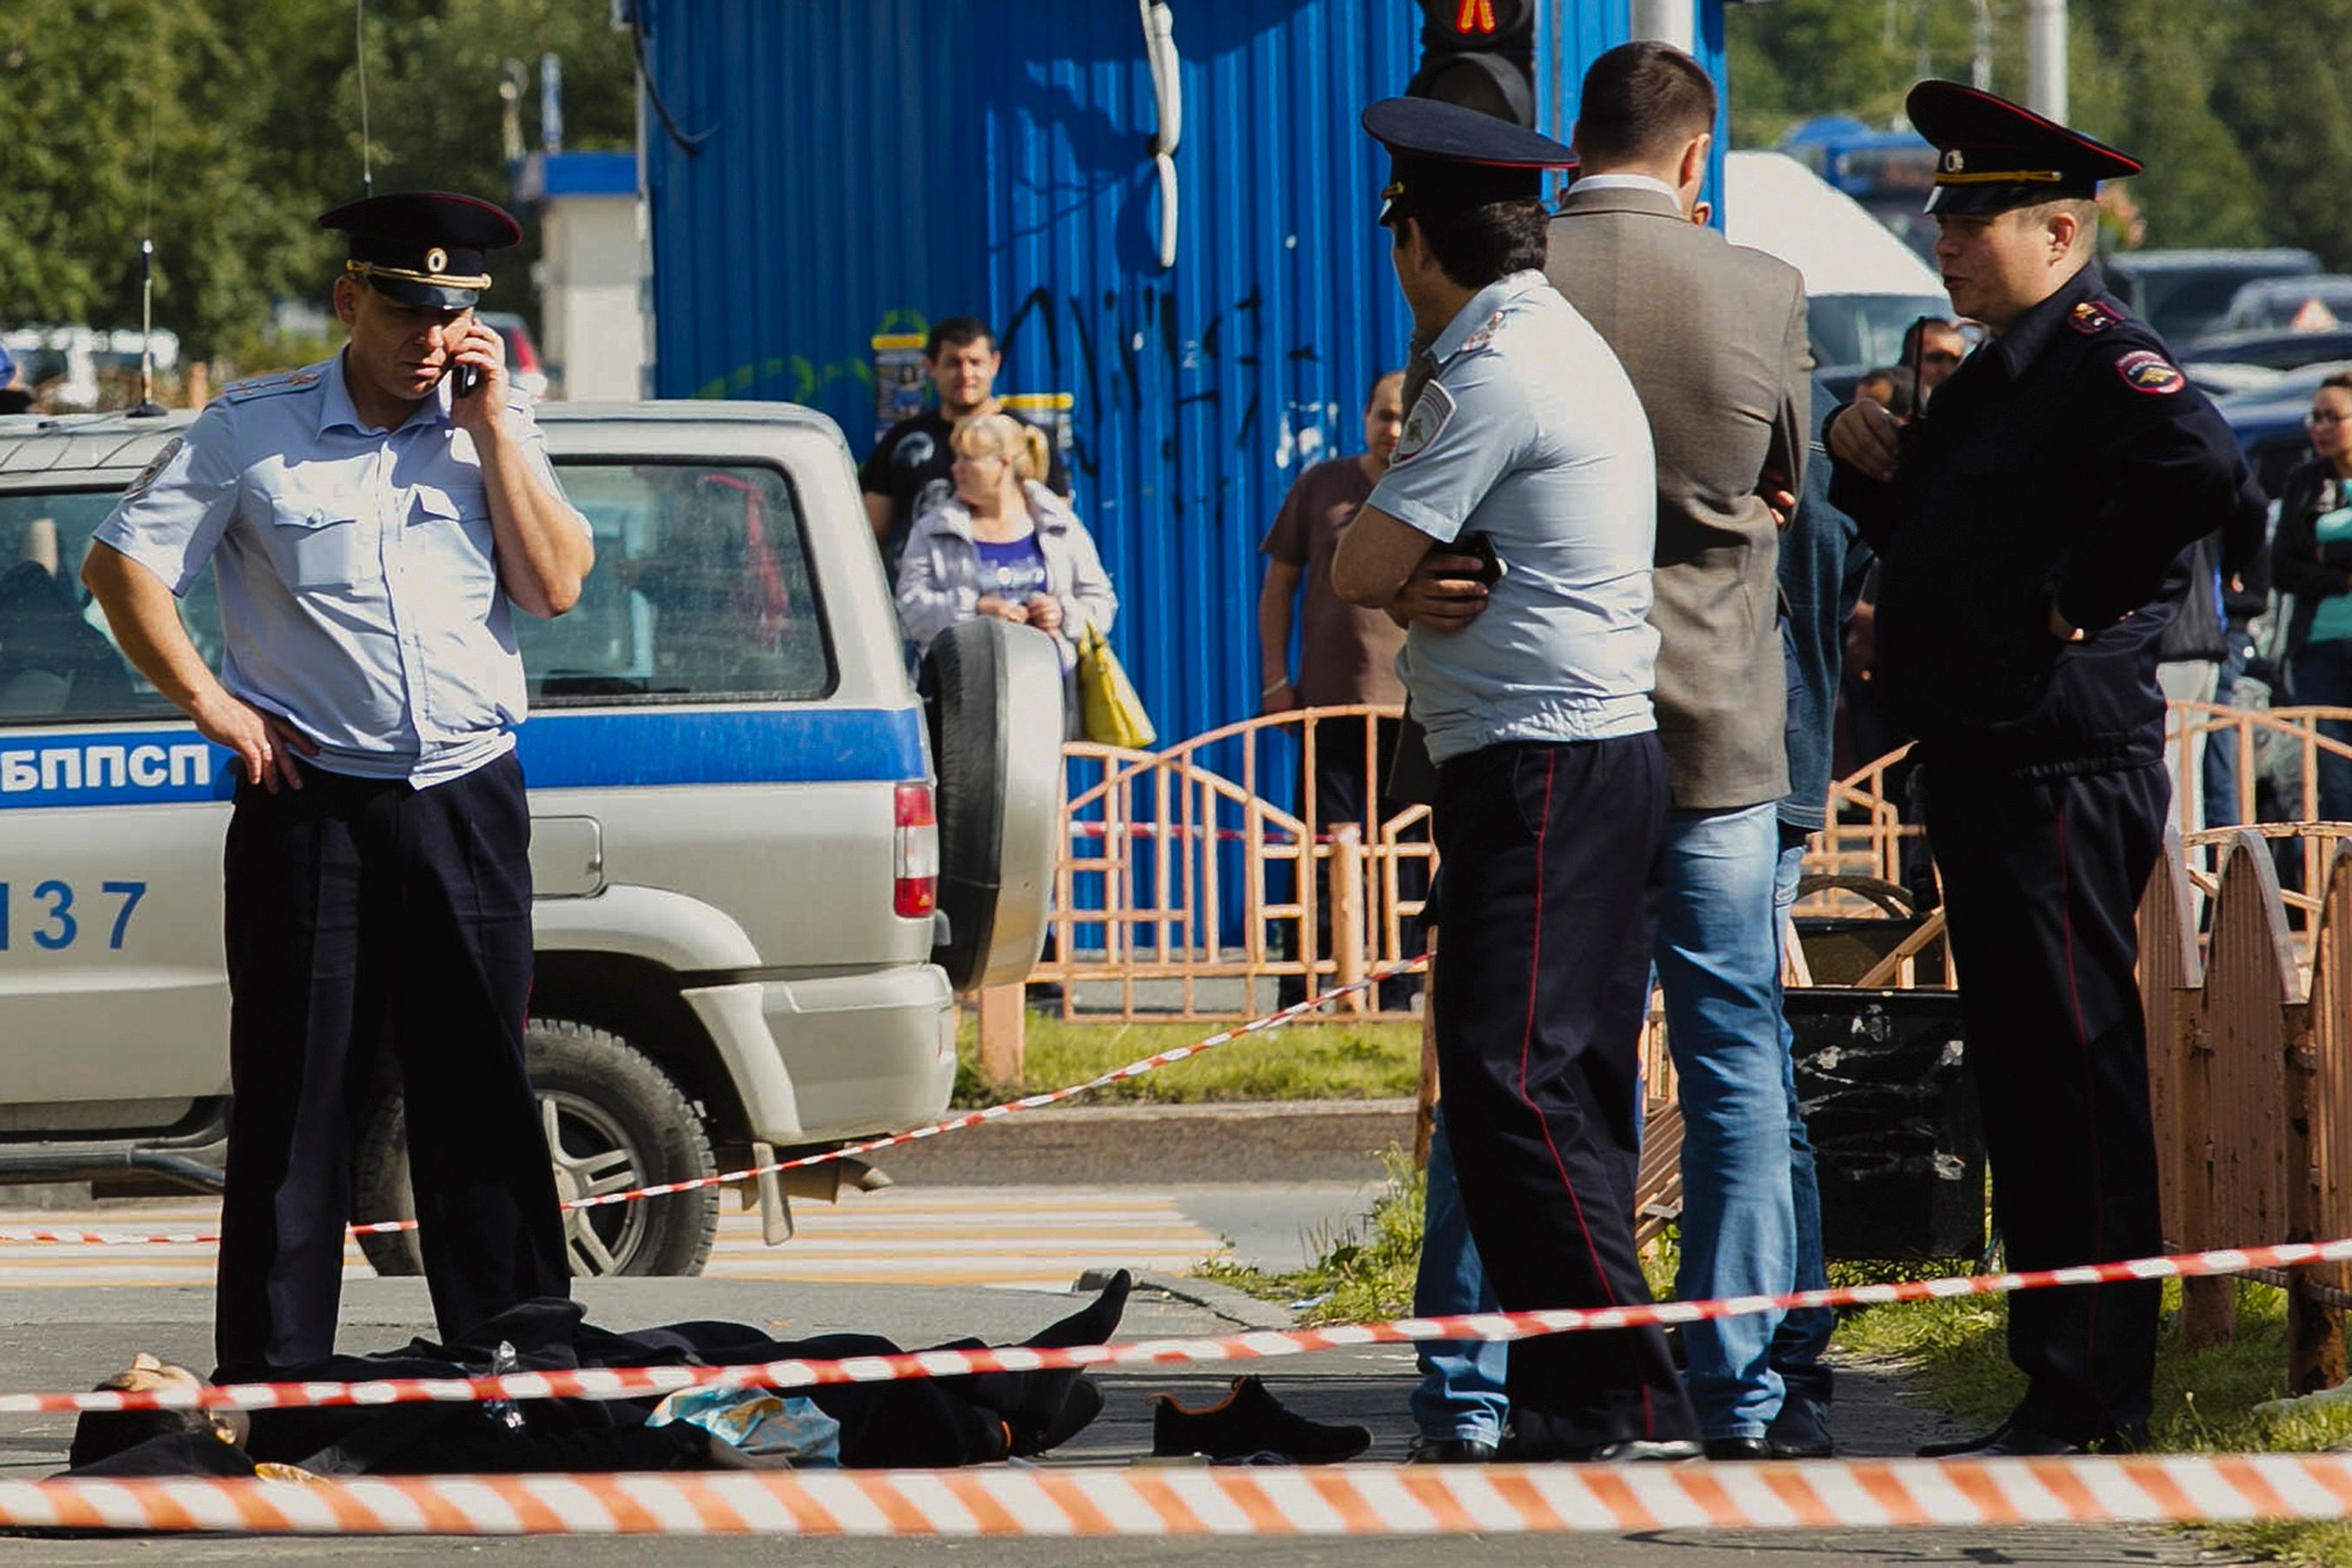 Police in Russia mum over Islamic State responsibility for stabbing spree